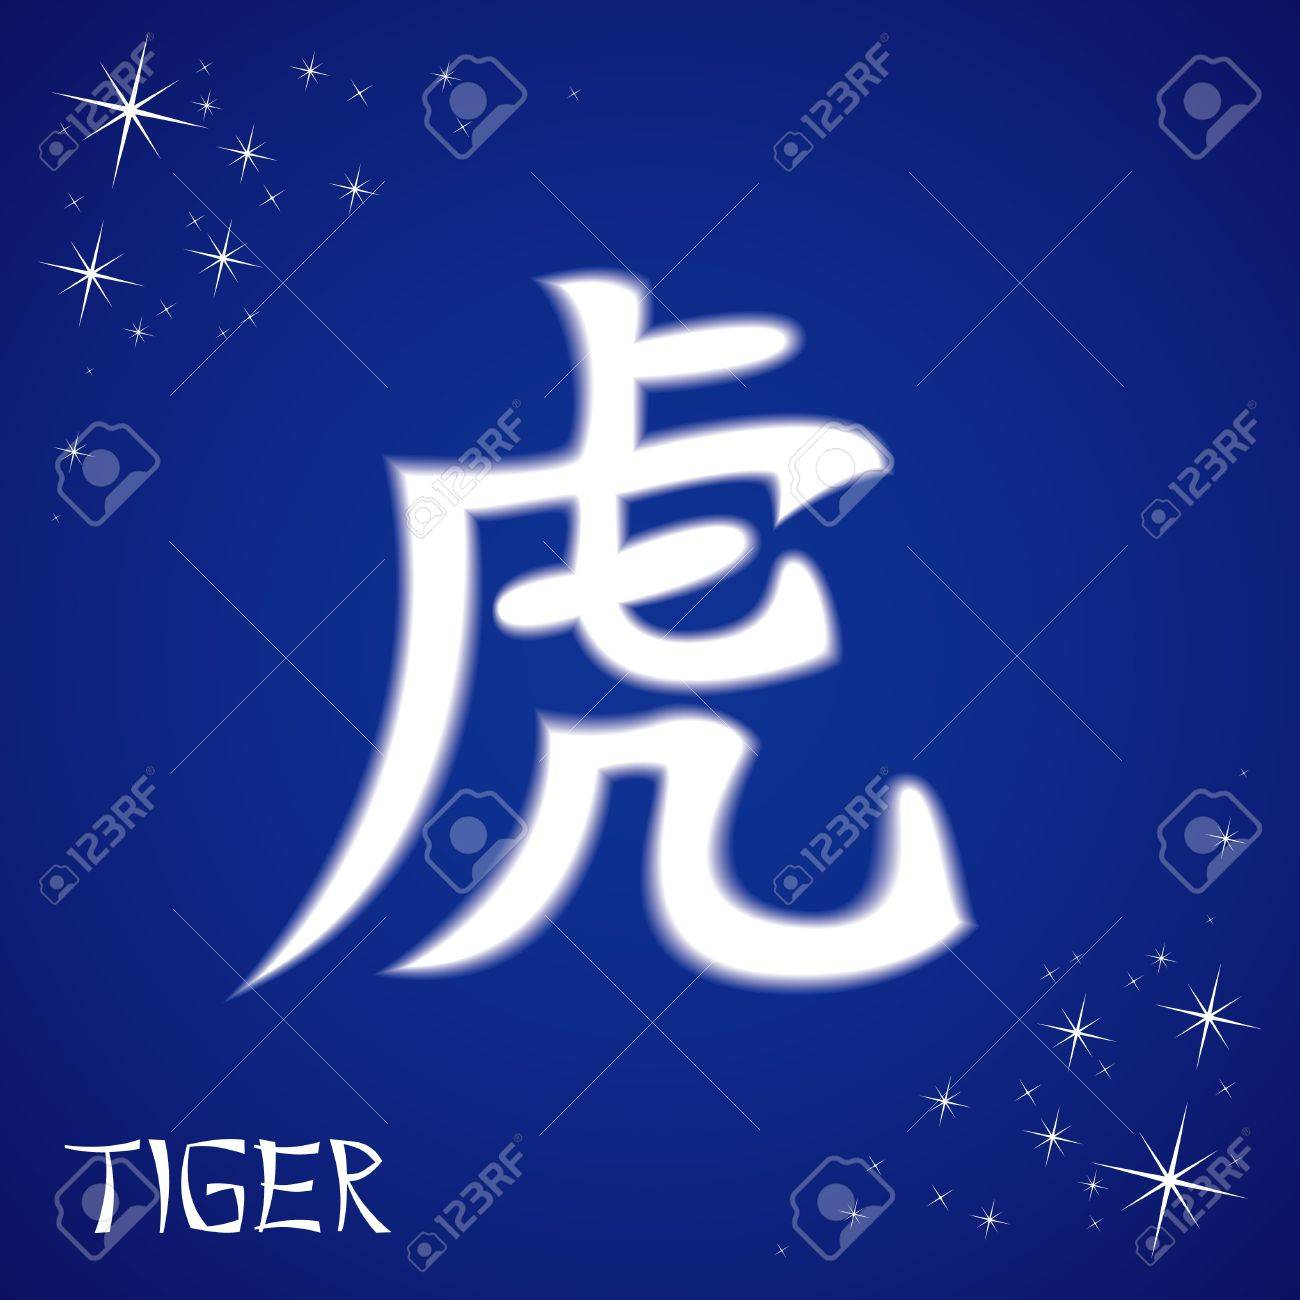 Vector illustration of chinese zodiac sign: tiger Stock Vector - 9941846